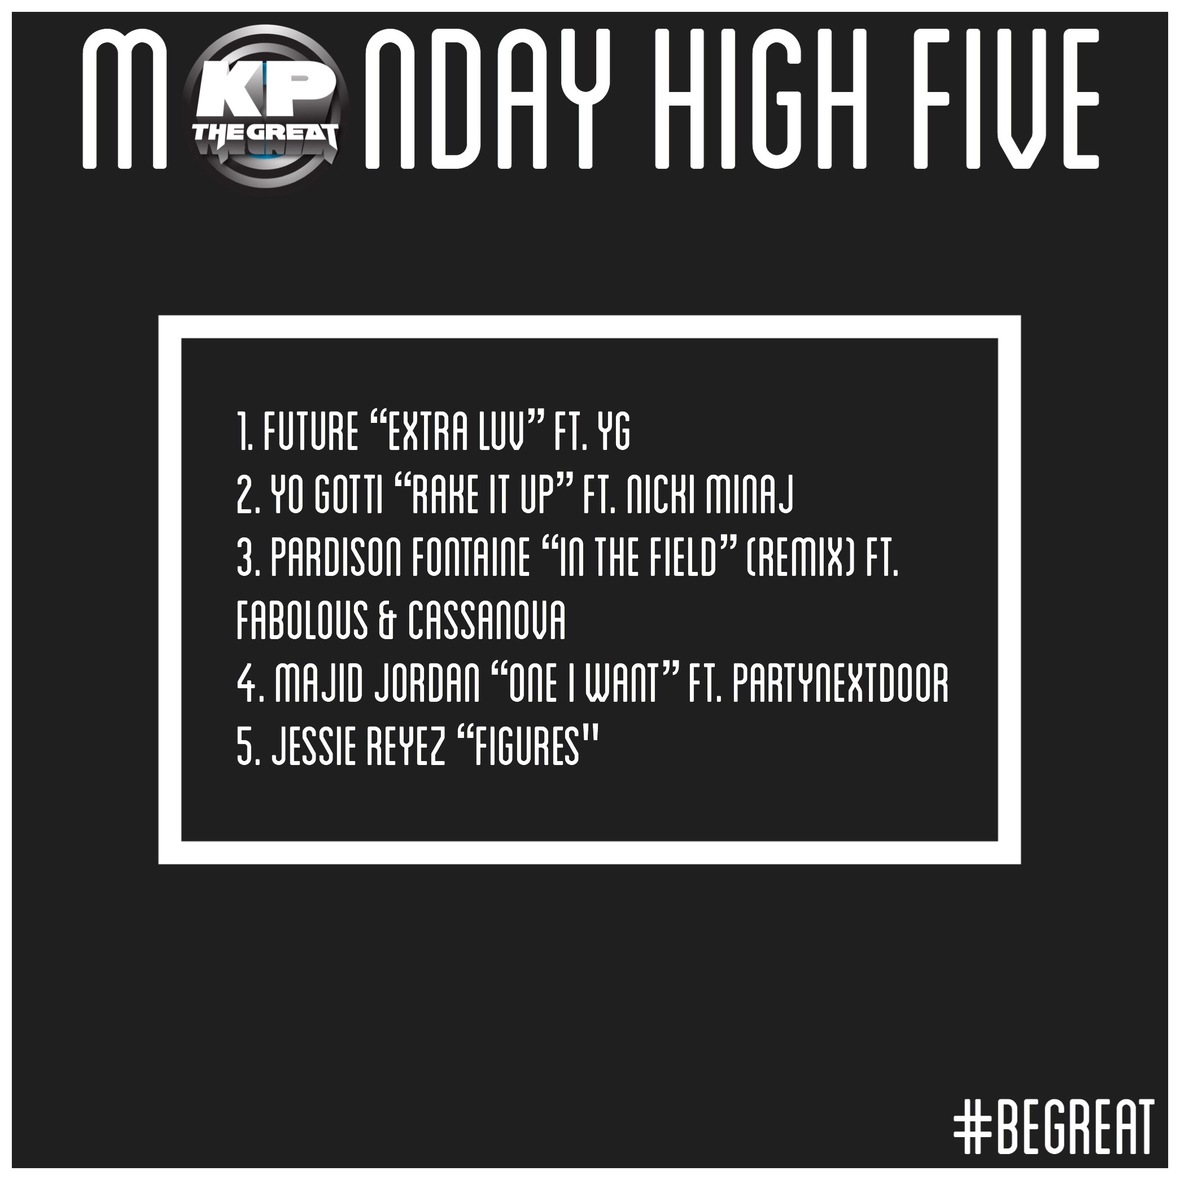 KP The Great Kicks off Fourth of July with New #MondayHighFive Mix with Sounds from Future, YG, Yo Gotti, Majid Jordan and More!